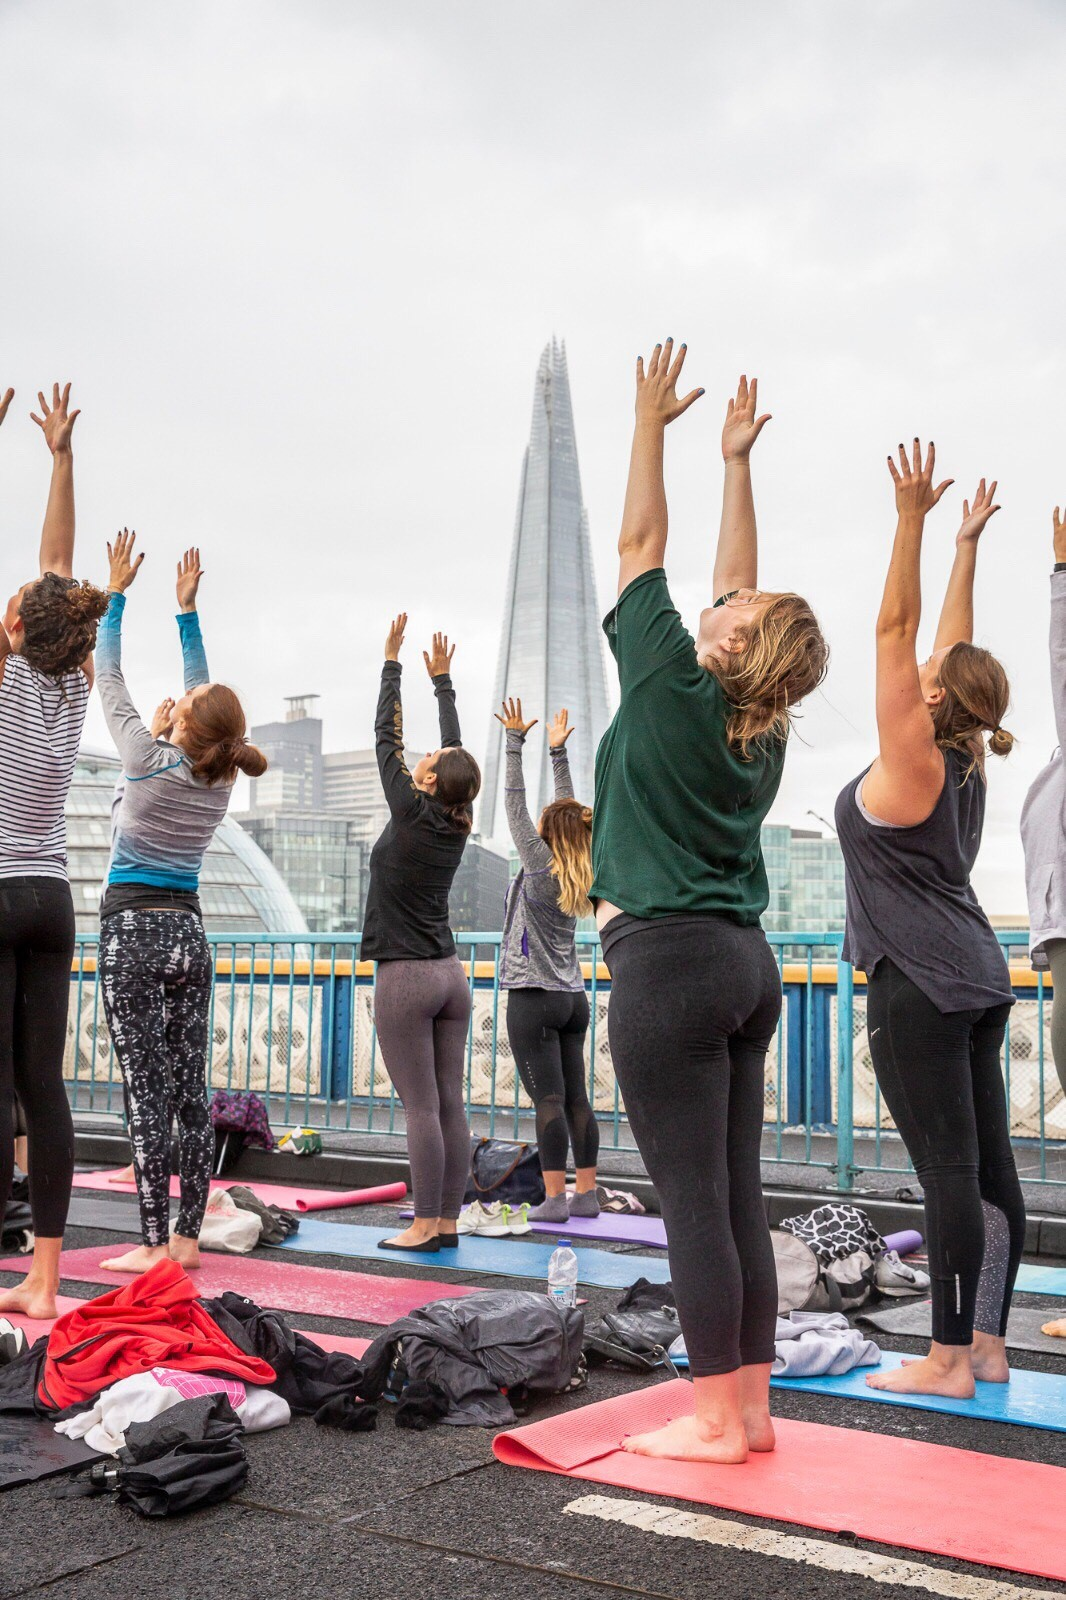 Reimagine Sunrise Flow yoga takes place on Tower Bridge, kicking off Car Free Day on Sunday 22 September